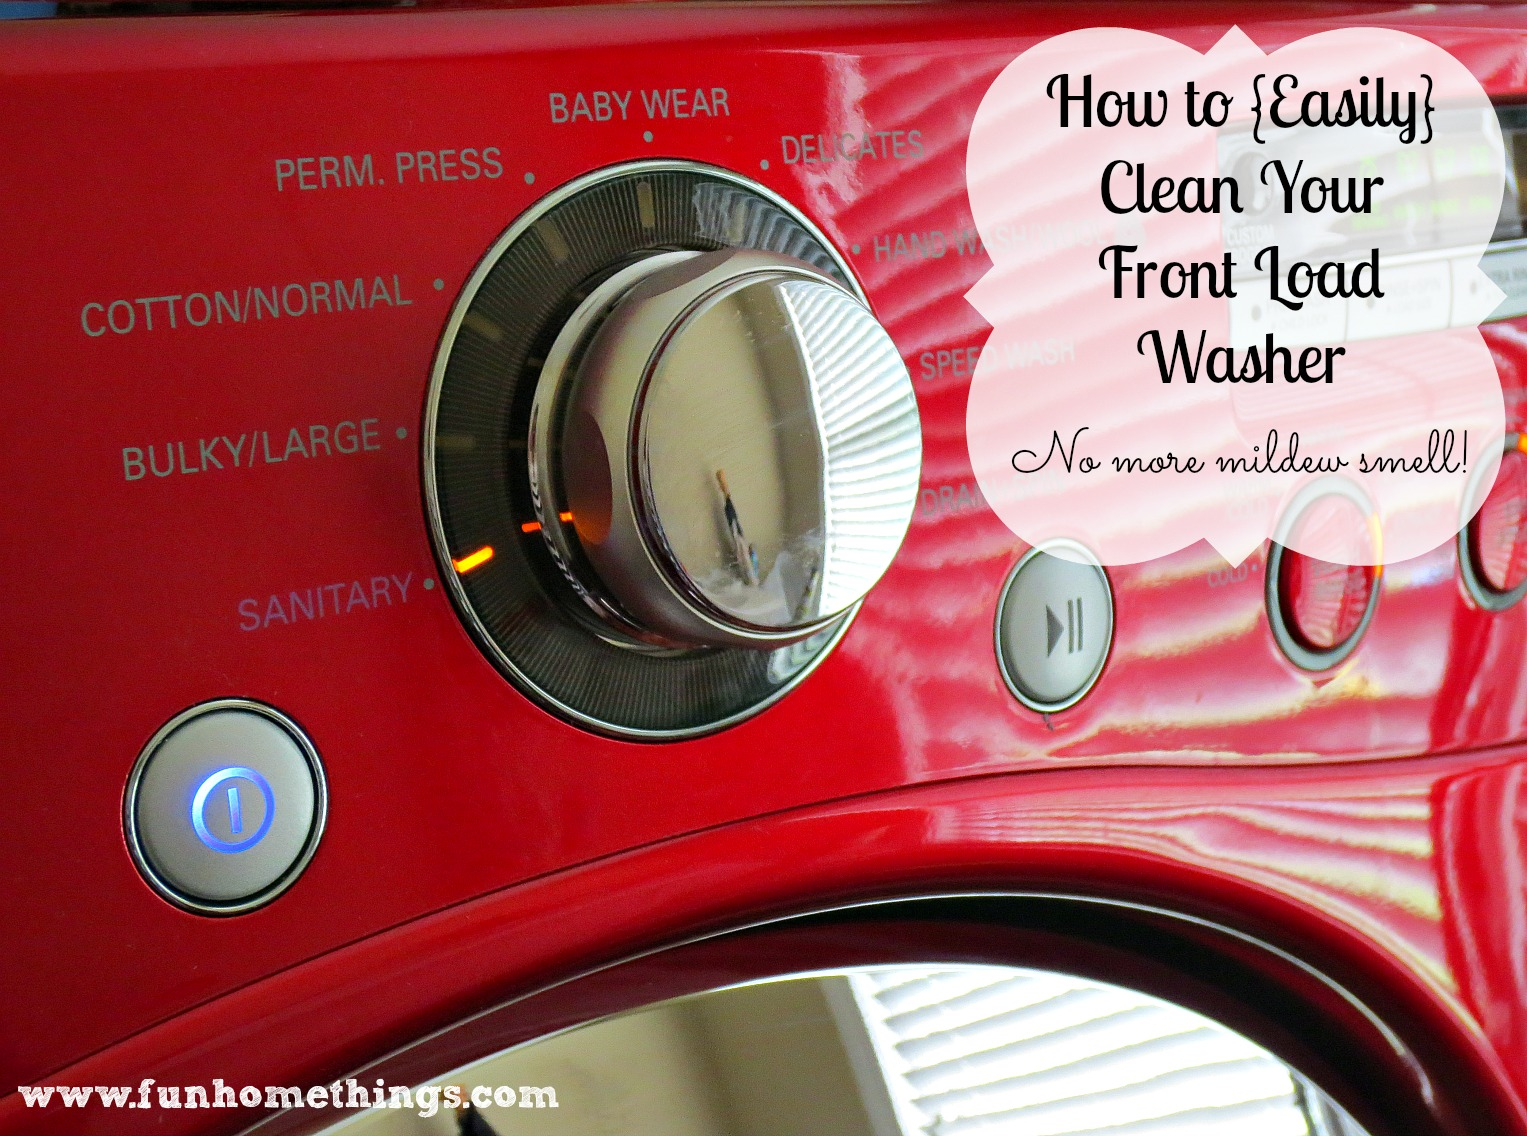 how to clean front load washer with bleach